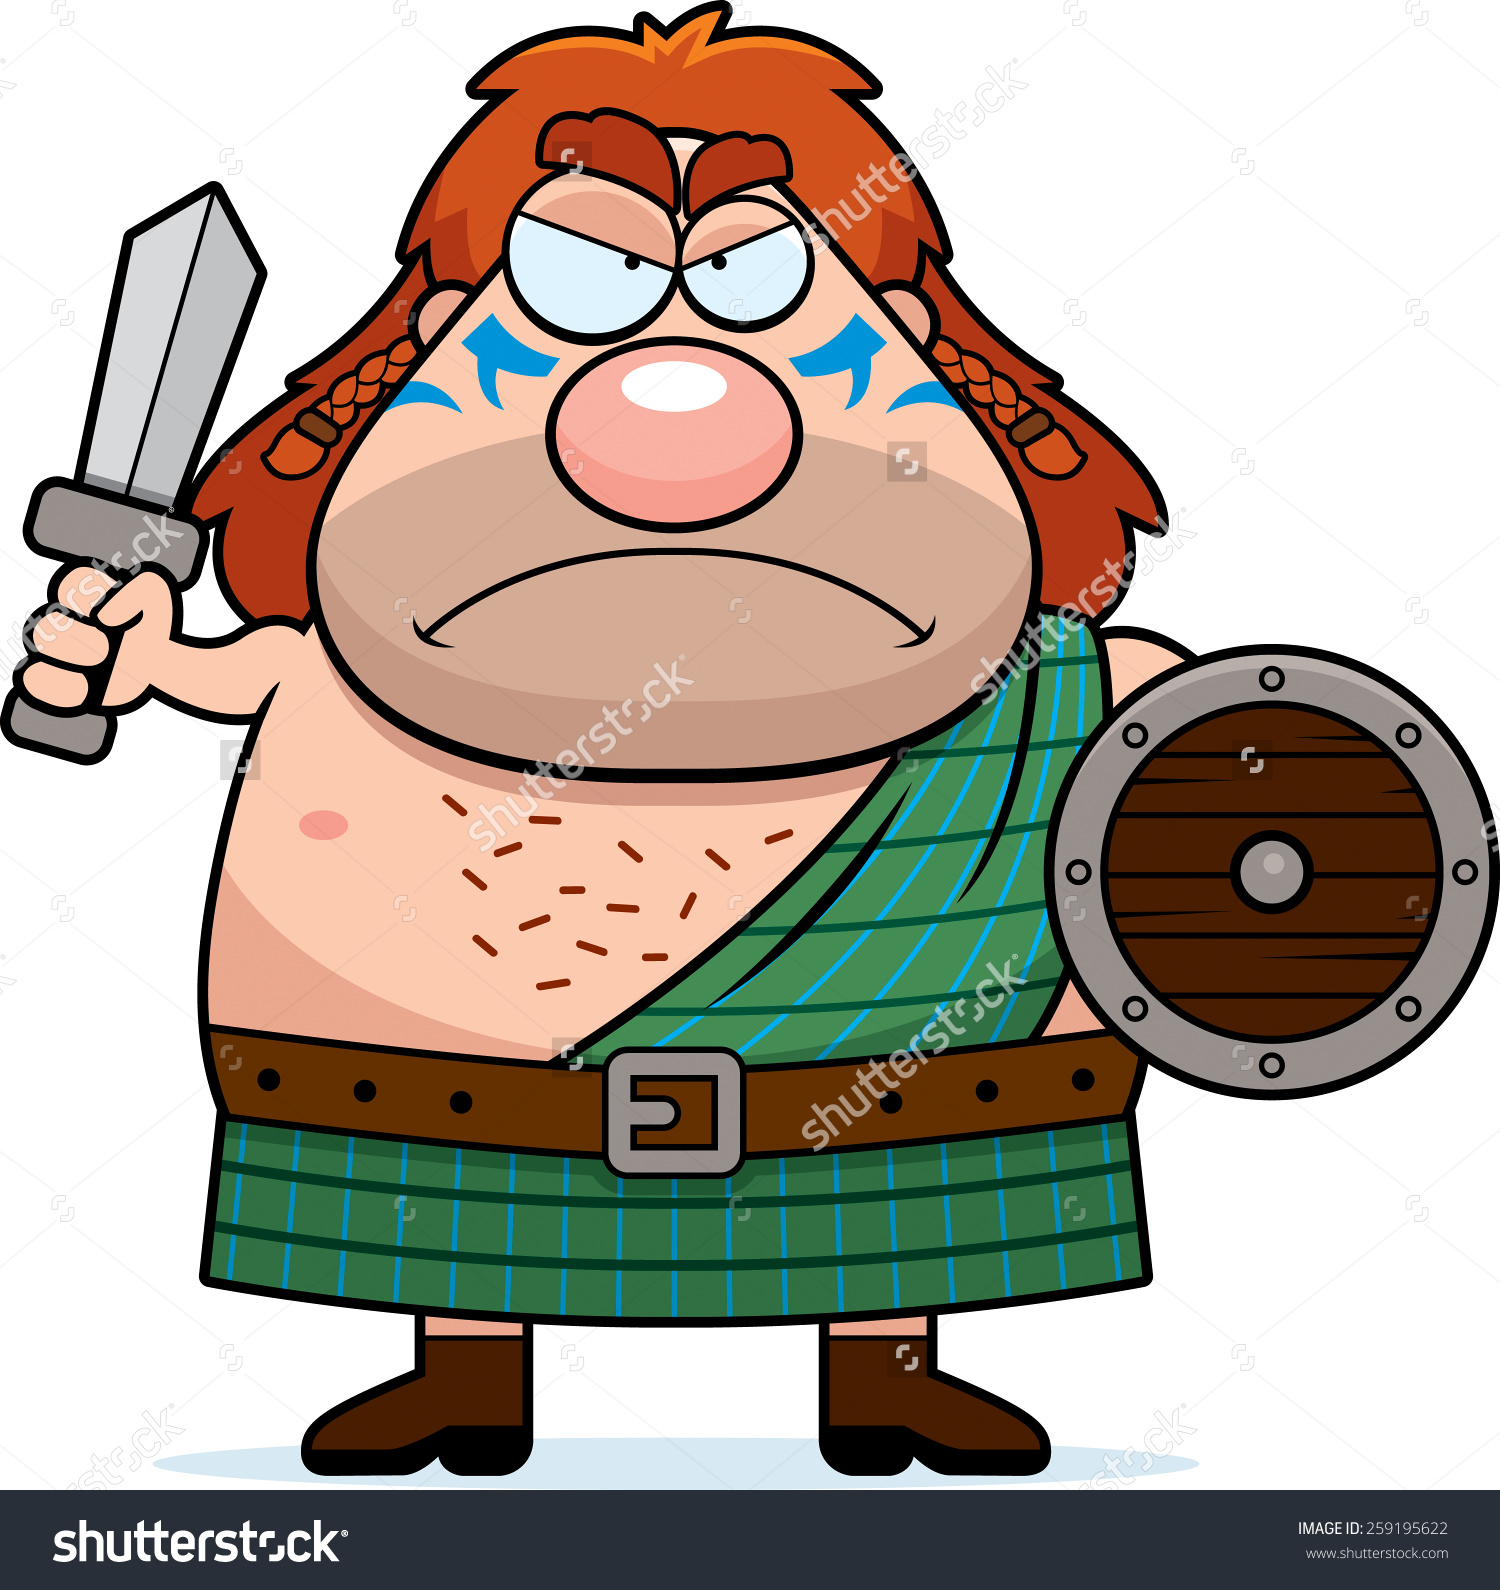 Cartoon Illustration Celtic Warrior Looking Angry Stock Vector.